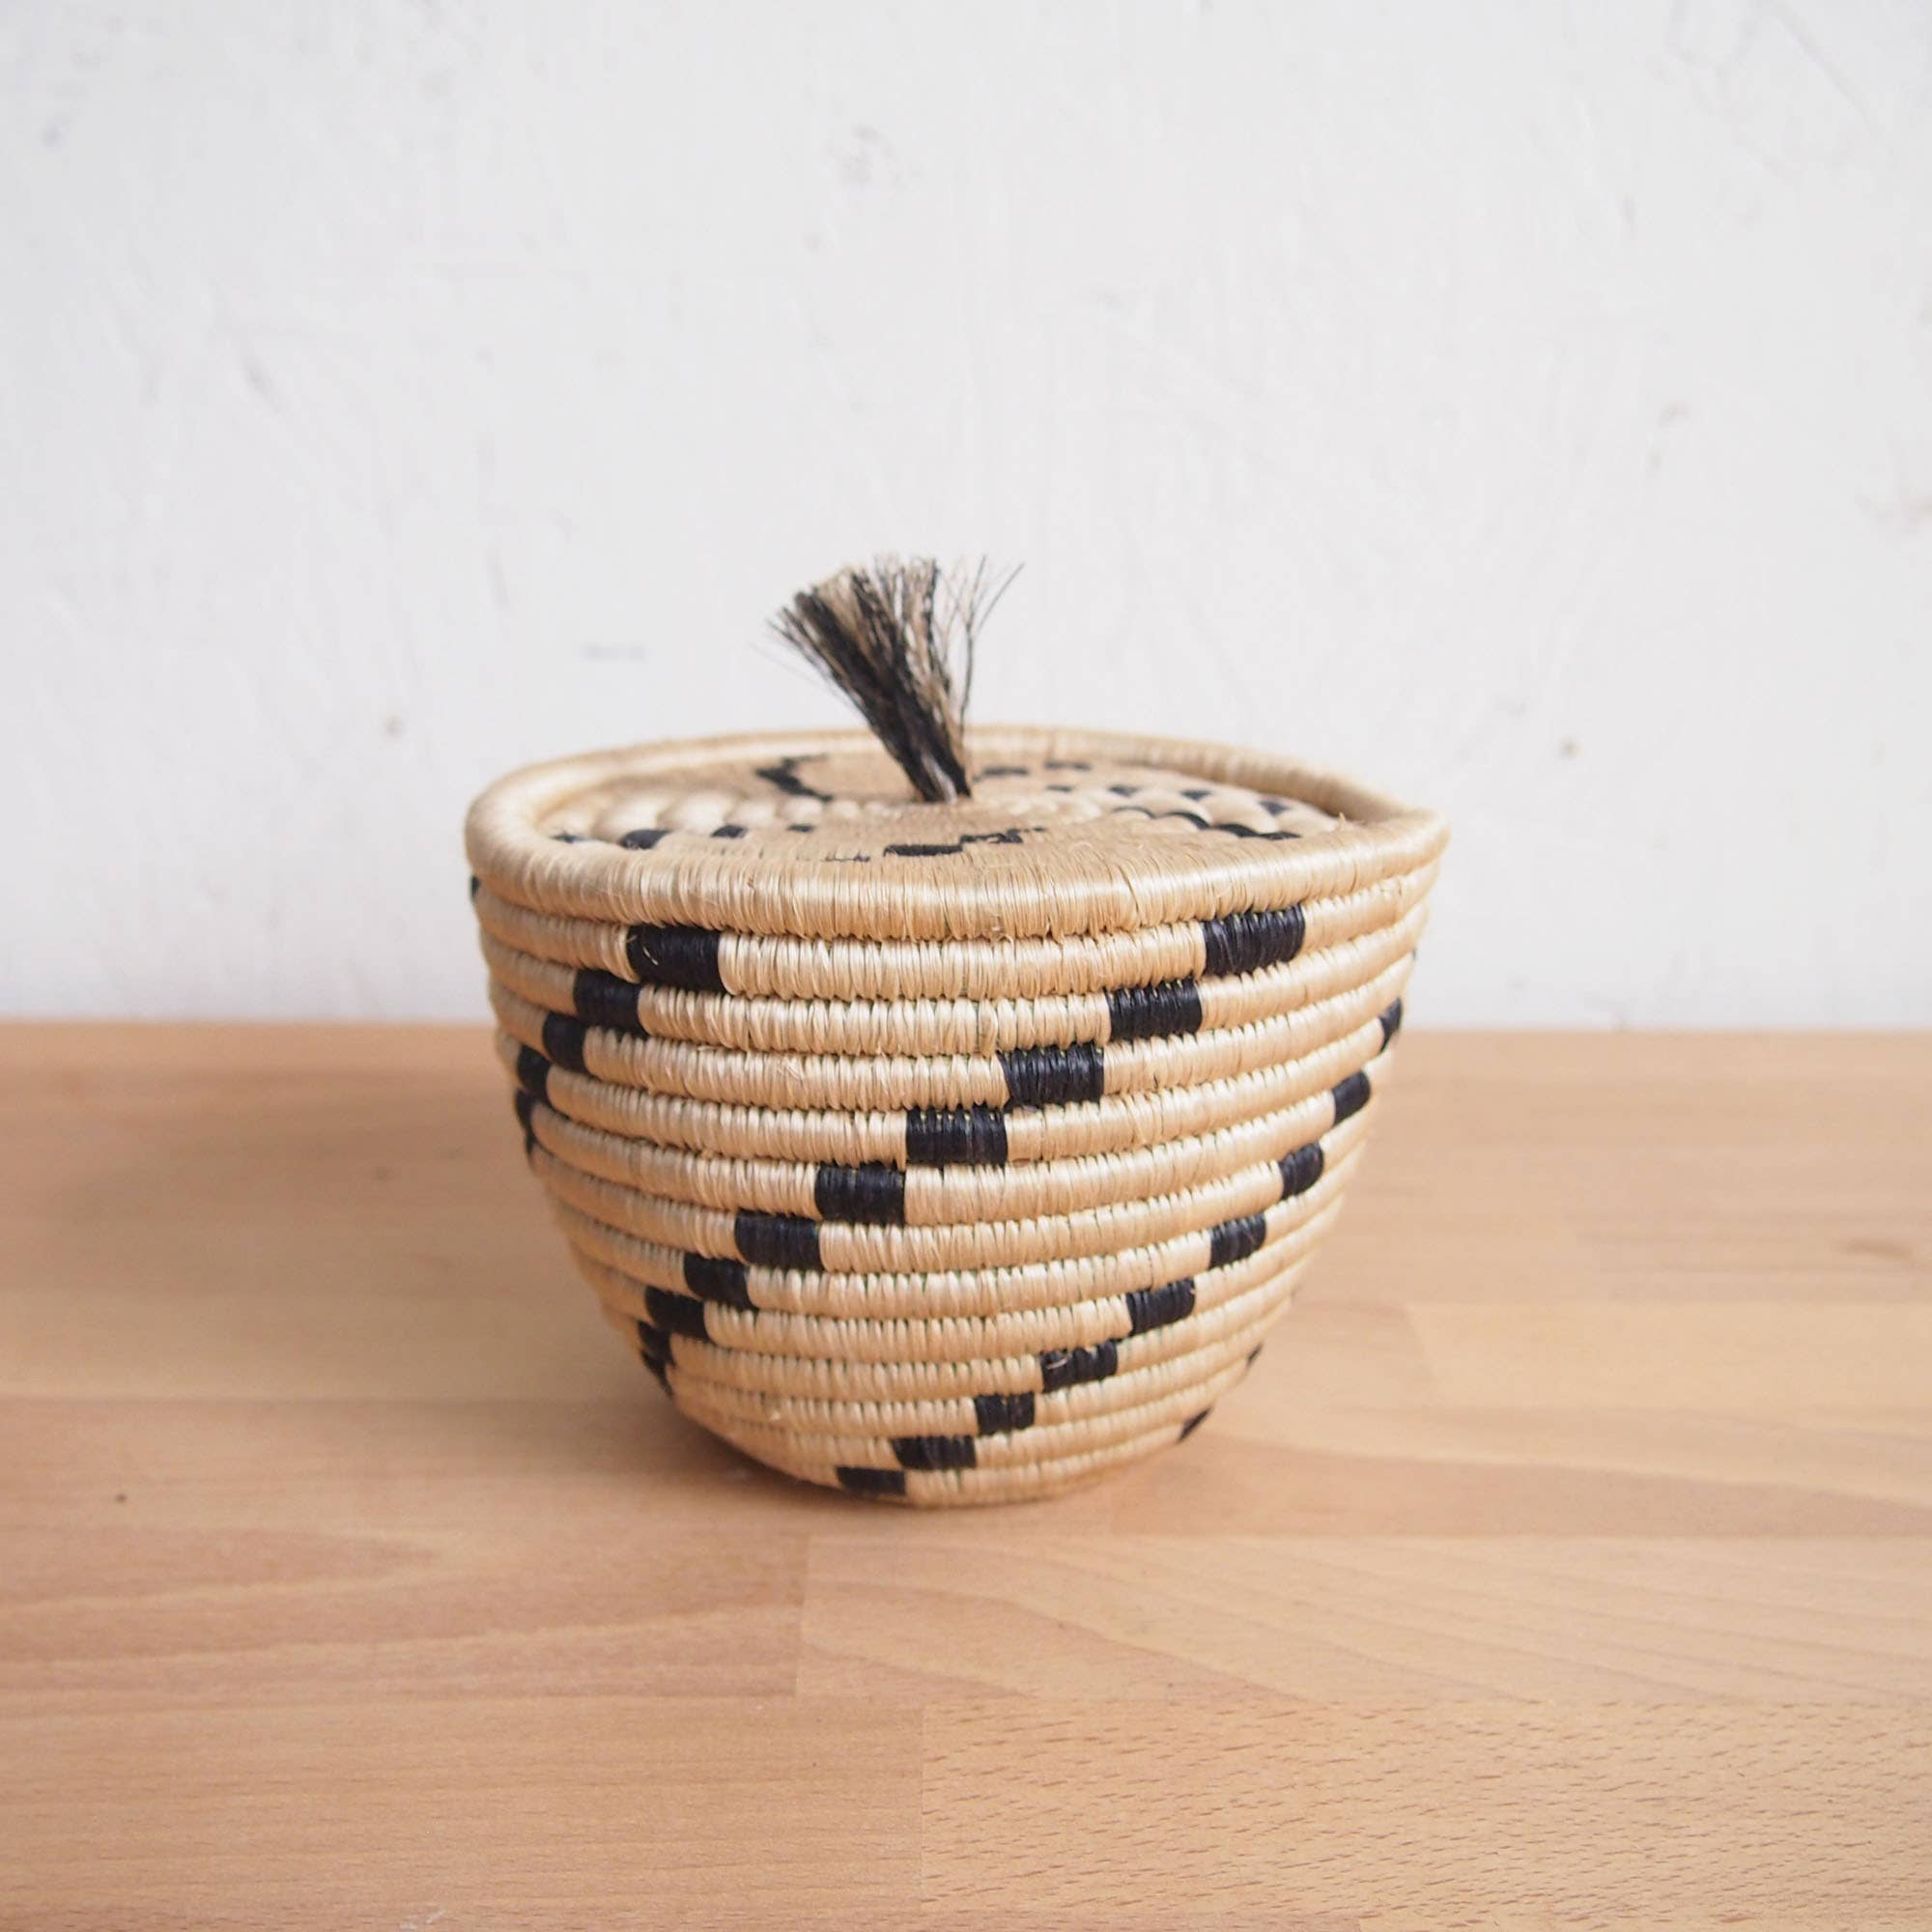 Amsha Tanga Mini Lidded Basket